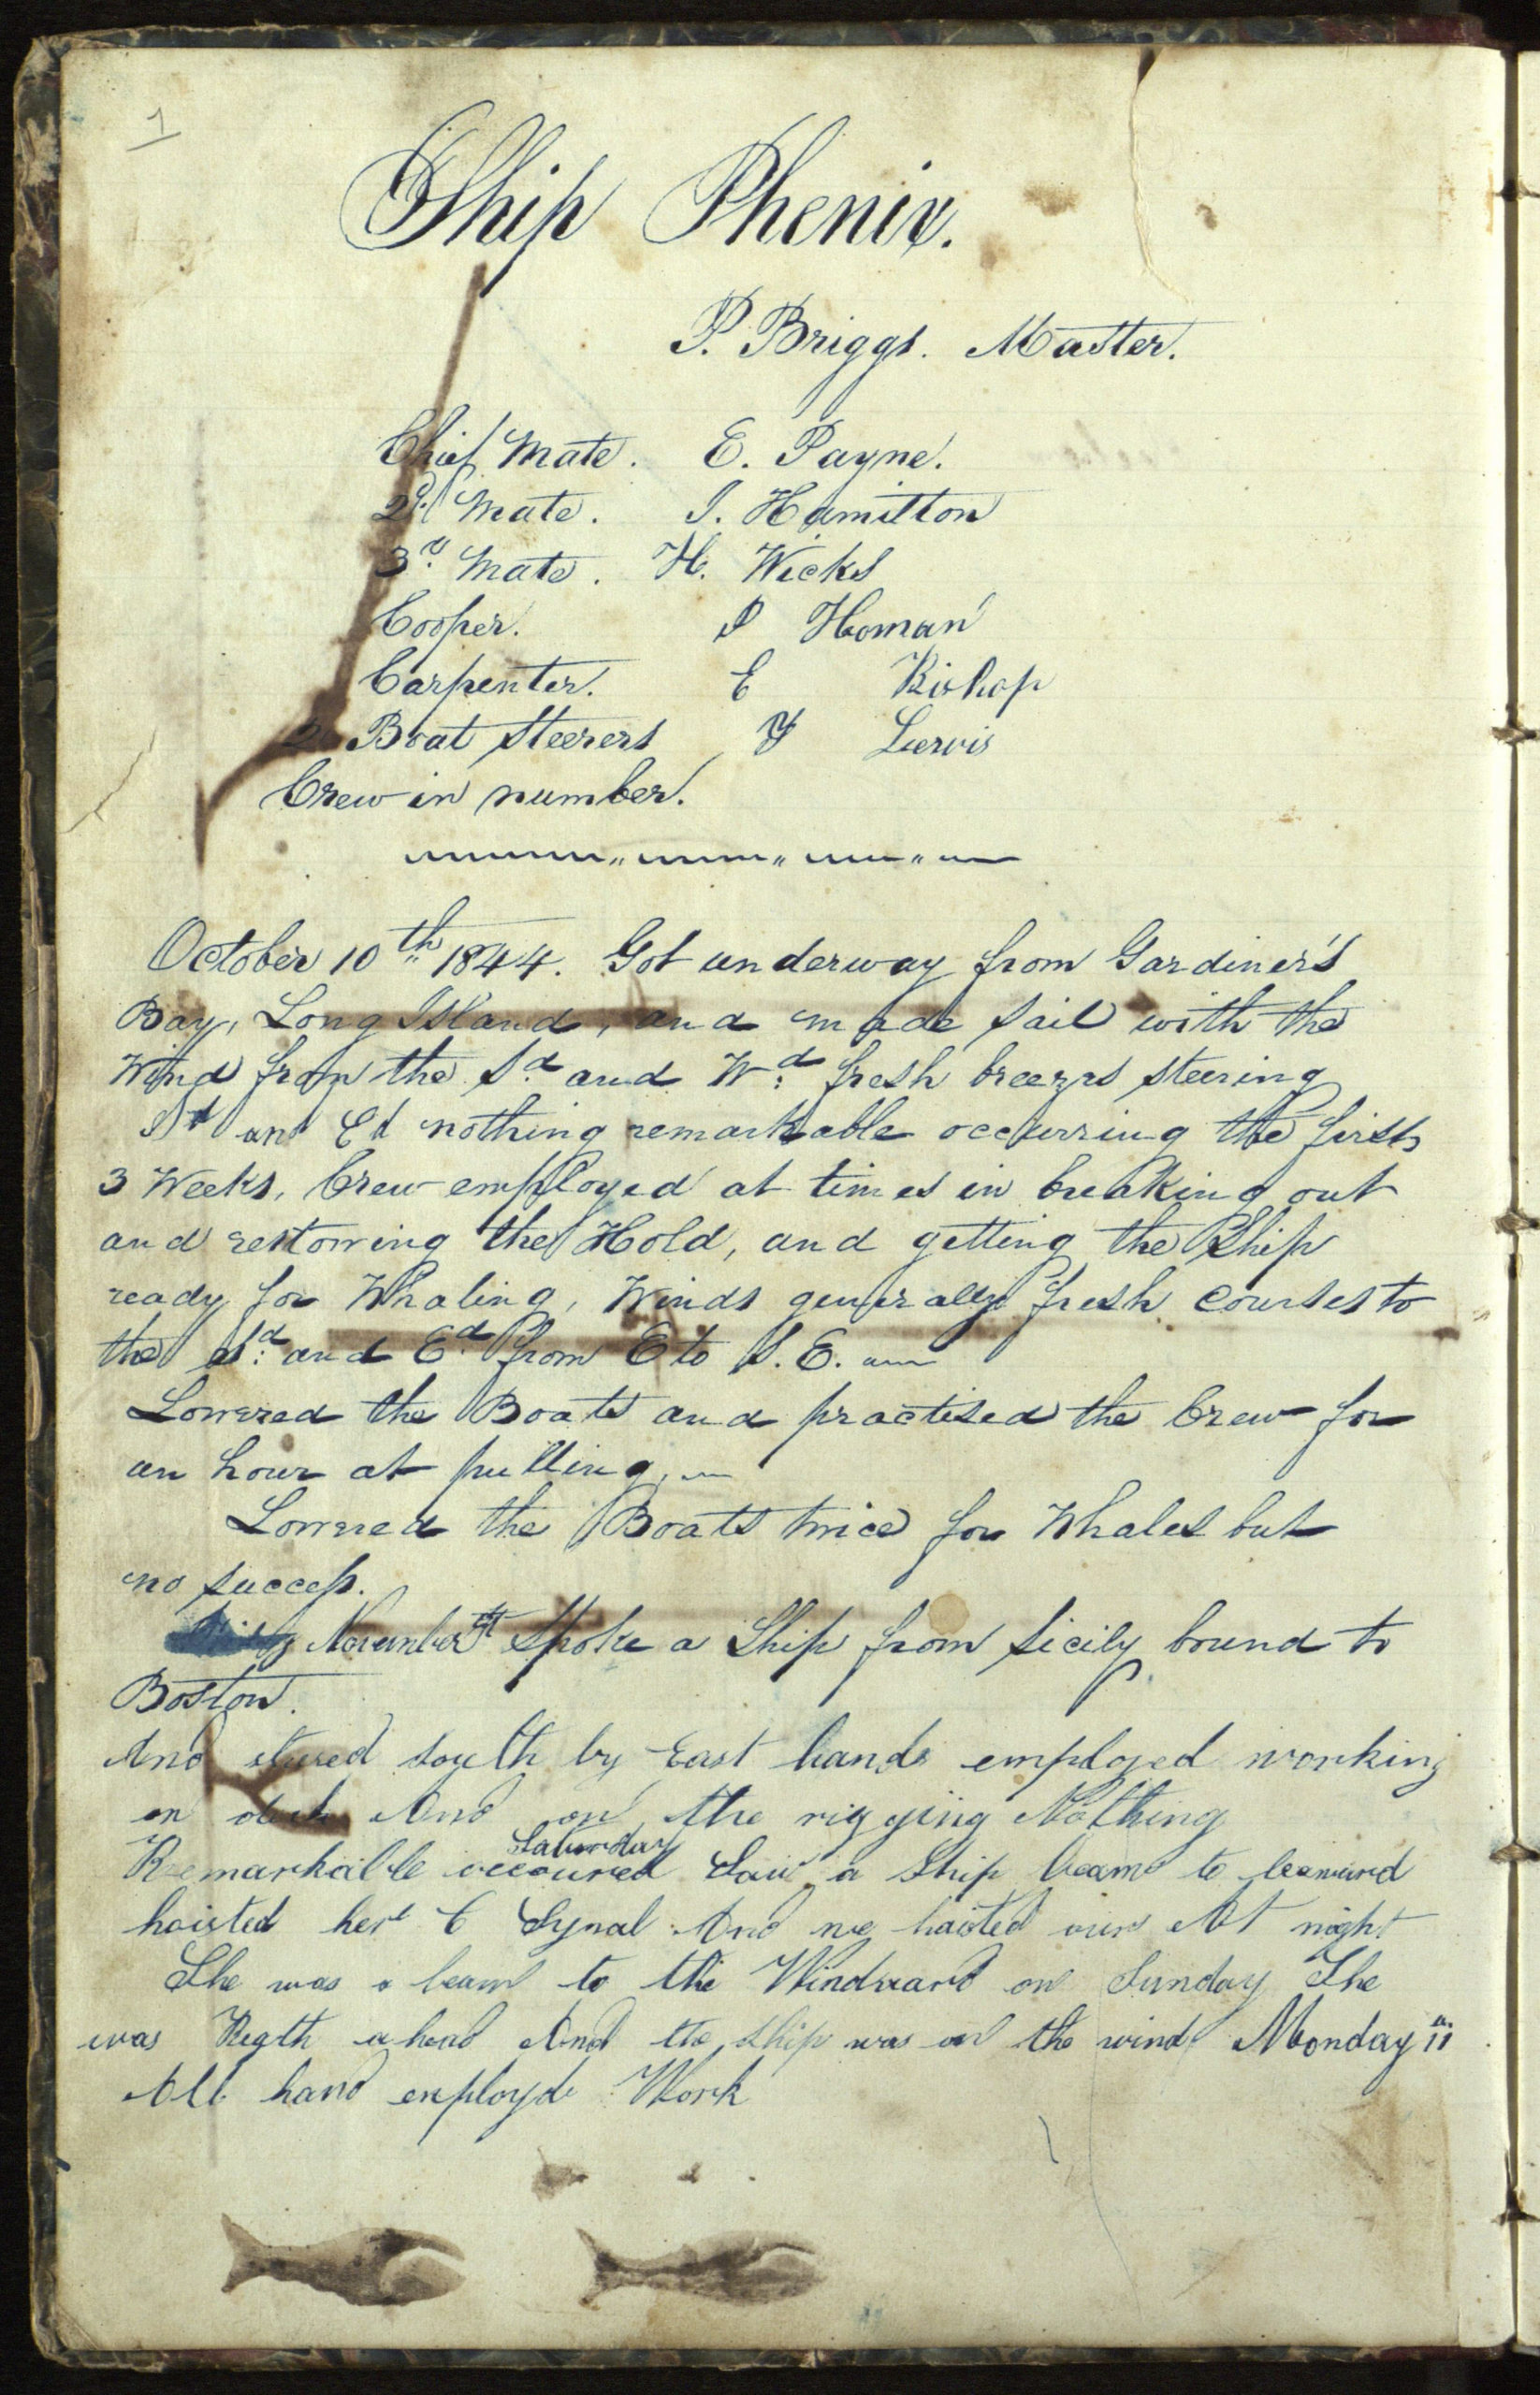 A page from the log of the whaling ship Phenix, on a voyage from Sag Harbor to the Northwest Coast, 10 October 1844 to 5 June 1847.  Journal abruptly ends, briefly picked up again for a few days in March 1847. The rest of the log contains  poems and sketches of buildings a schoolhouse in East Hampton  and churches in East Hampton and Sag Harbor.   COURTESY  EAST HAMPTON LIBRARY, LONG ISLAND COLLECTION